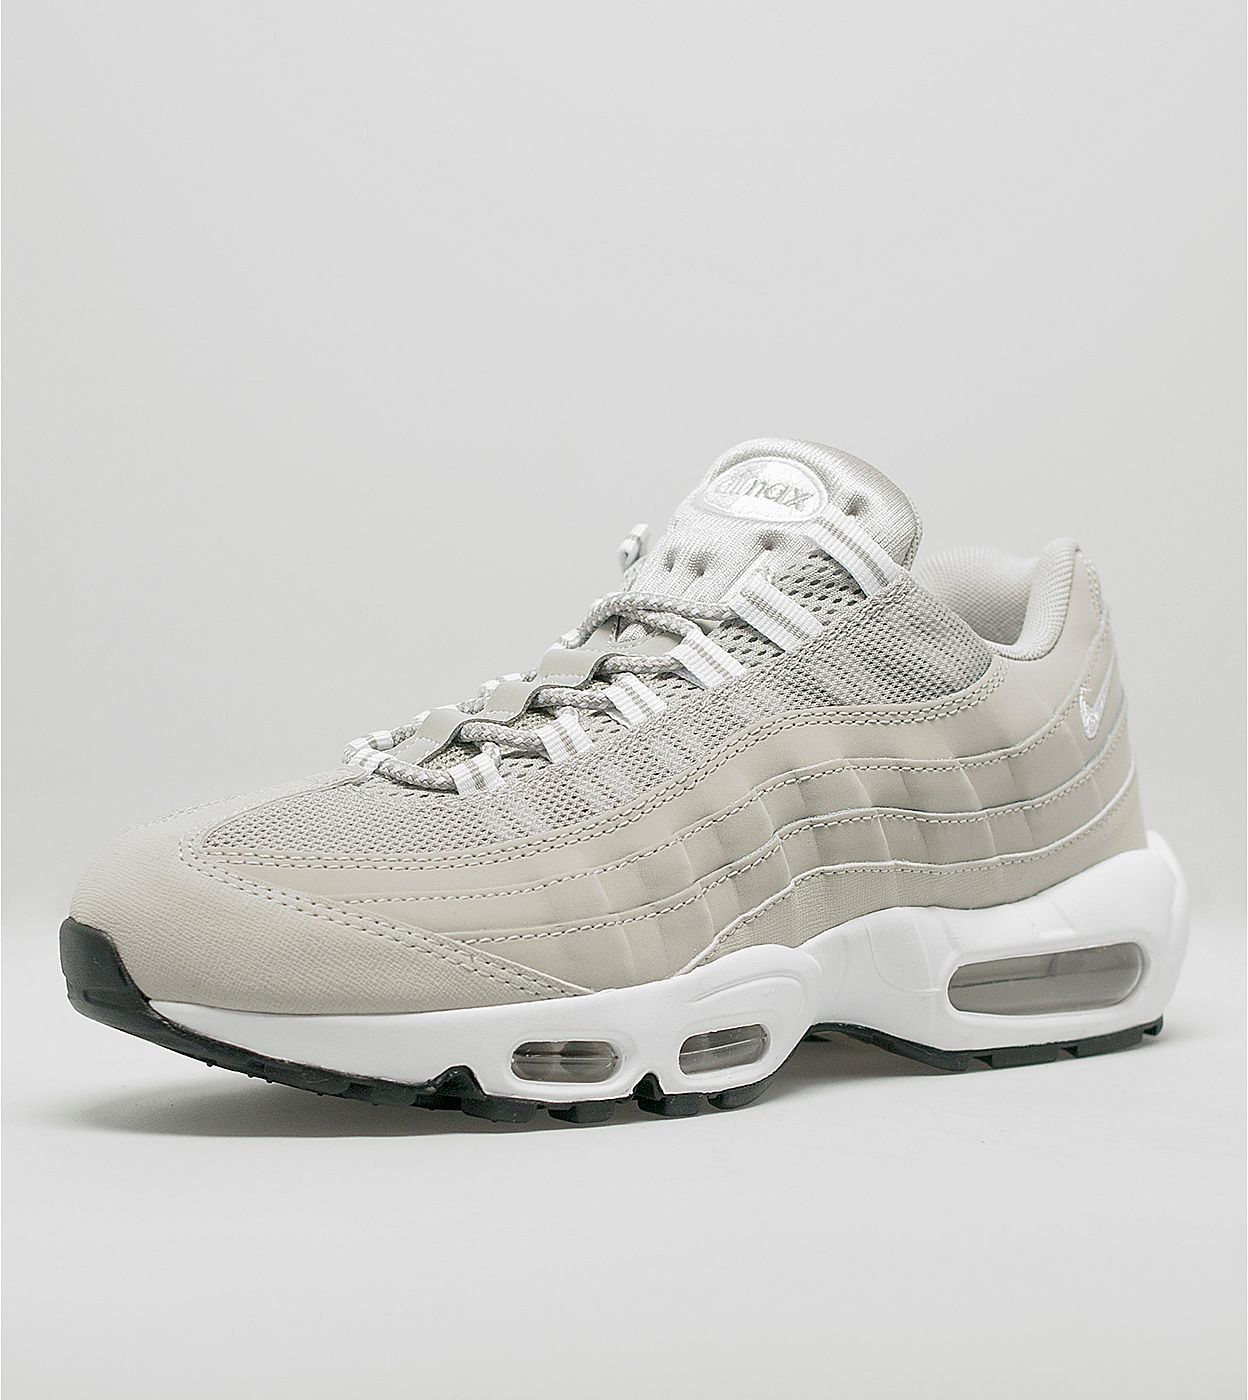 big sale 6a878 4892f ... norway nike air max 95. color granite white black d88de 1d4c4